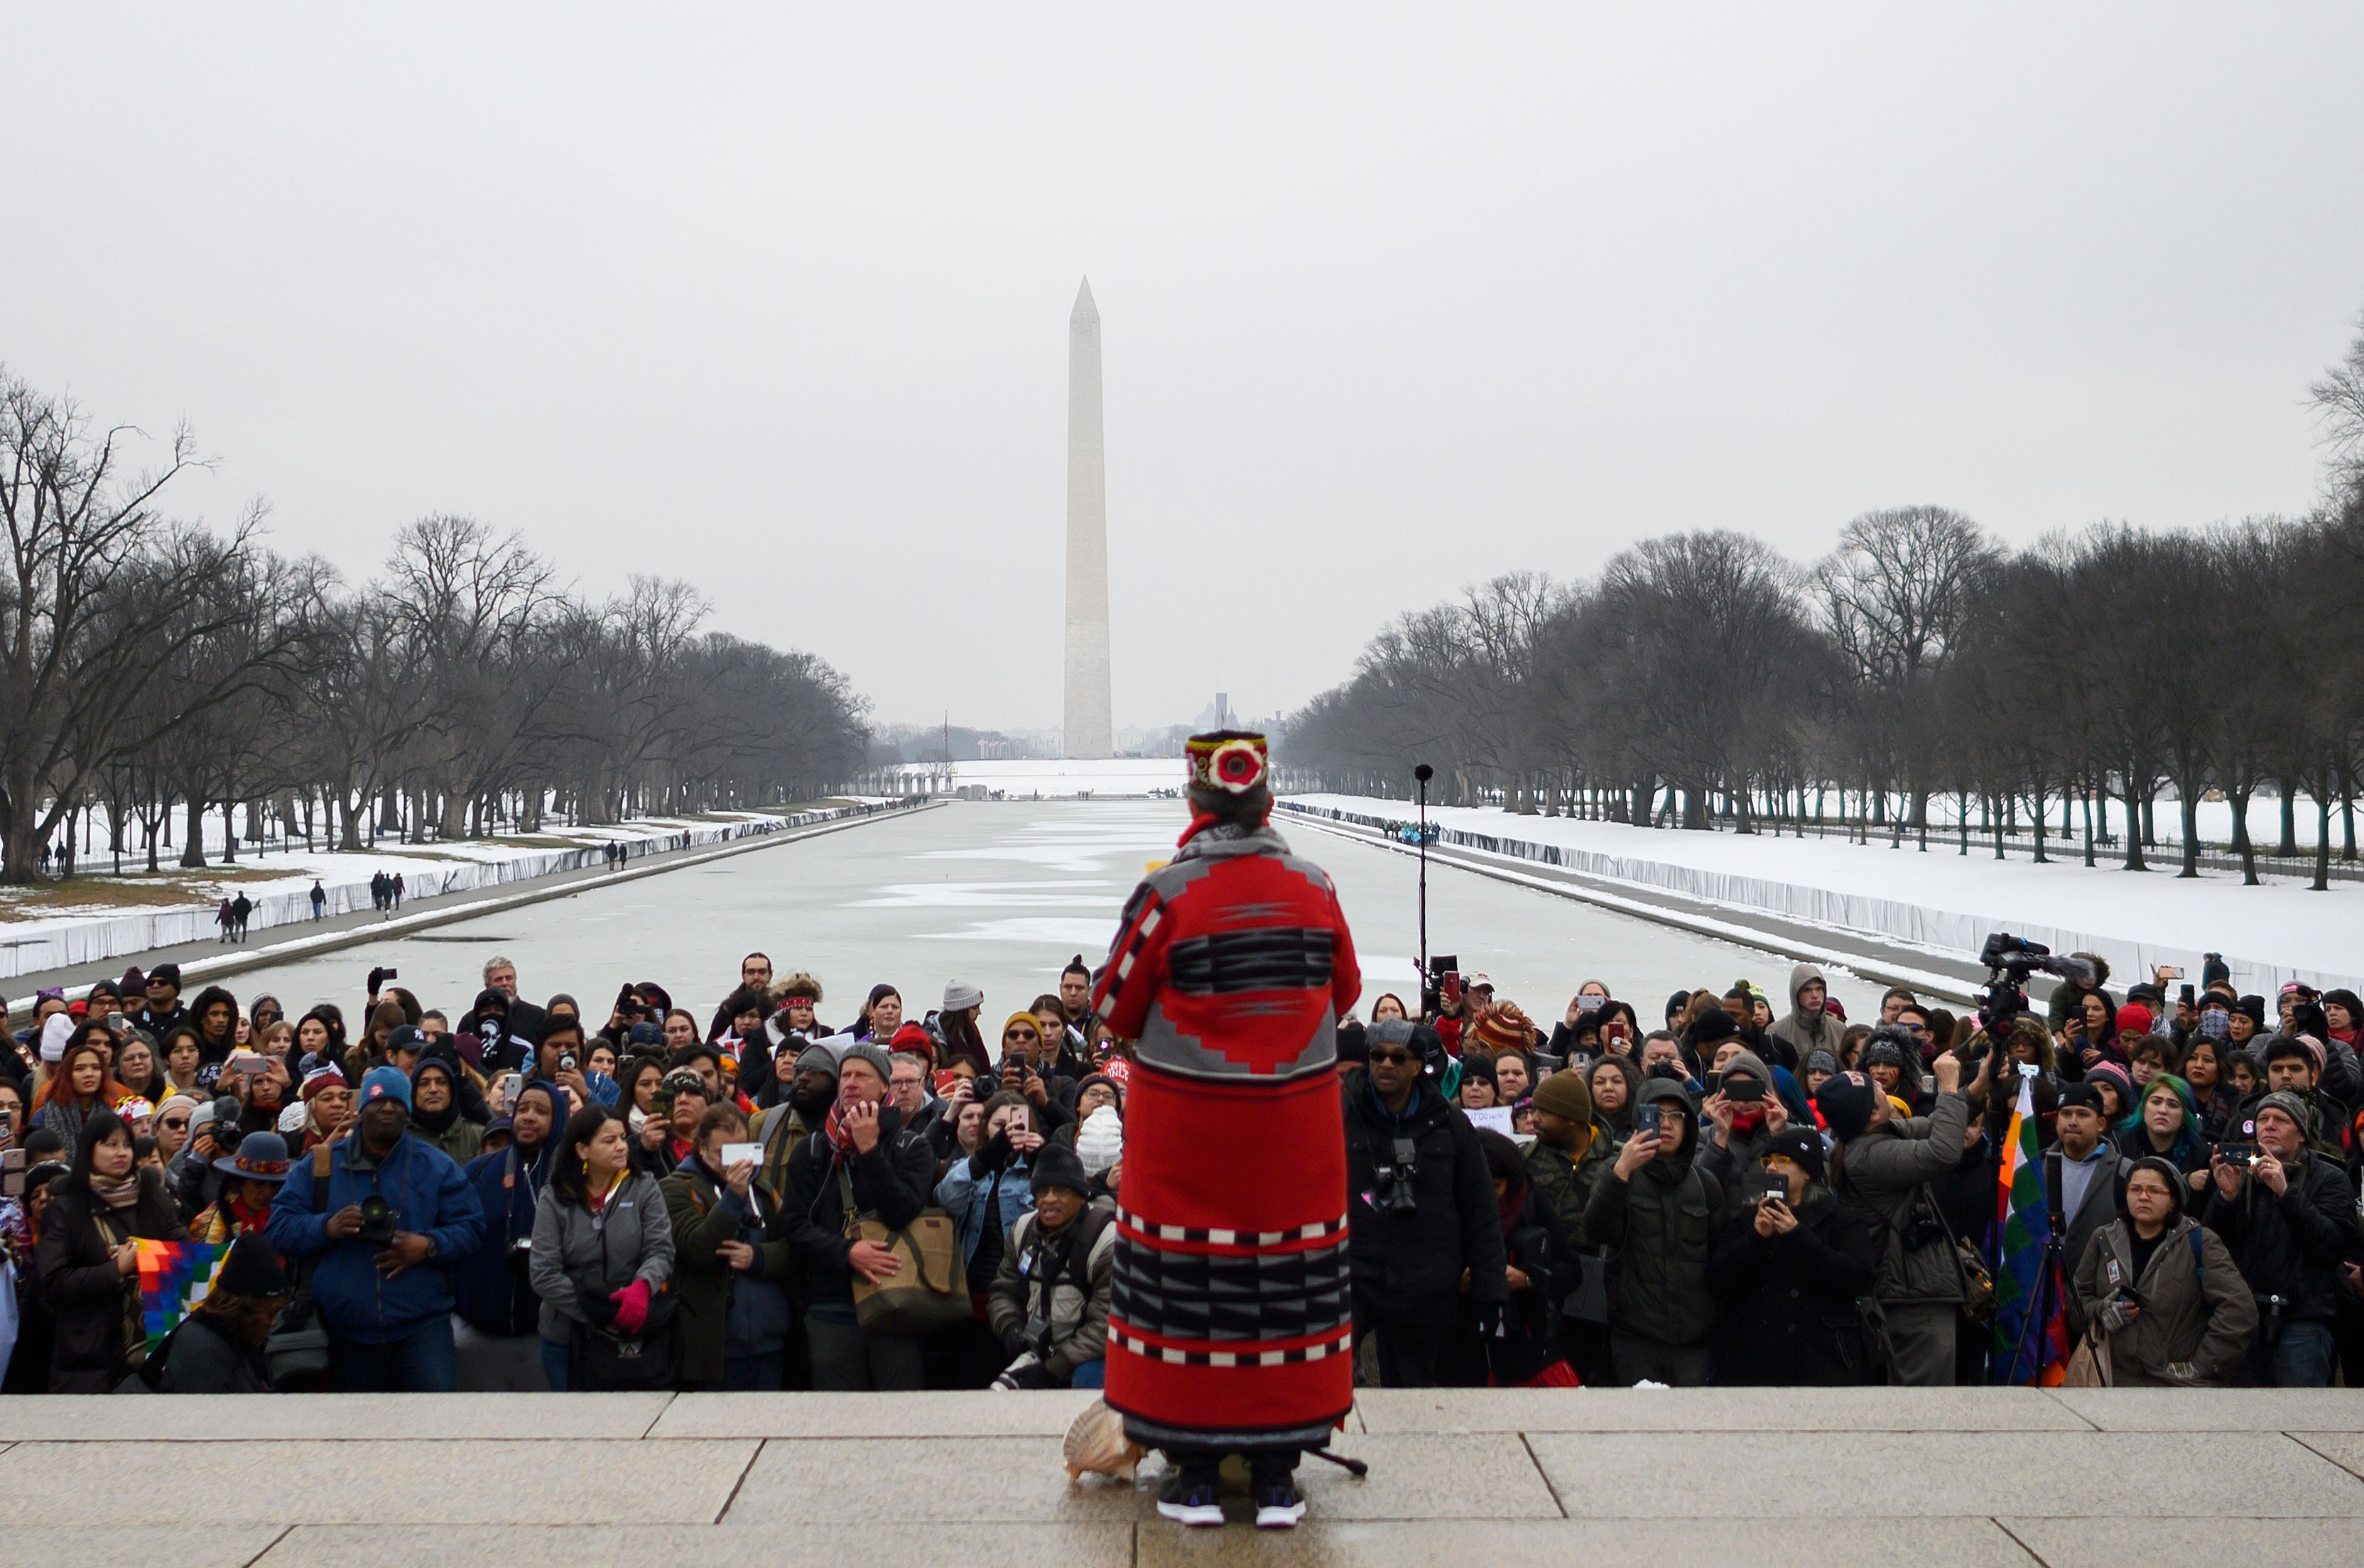 A woman speaks during the Indigenous People's March on the National Mall at the Lincoln Memorial in Washington, DC, on January 18, 2019.